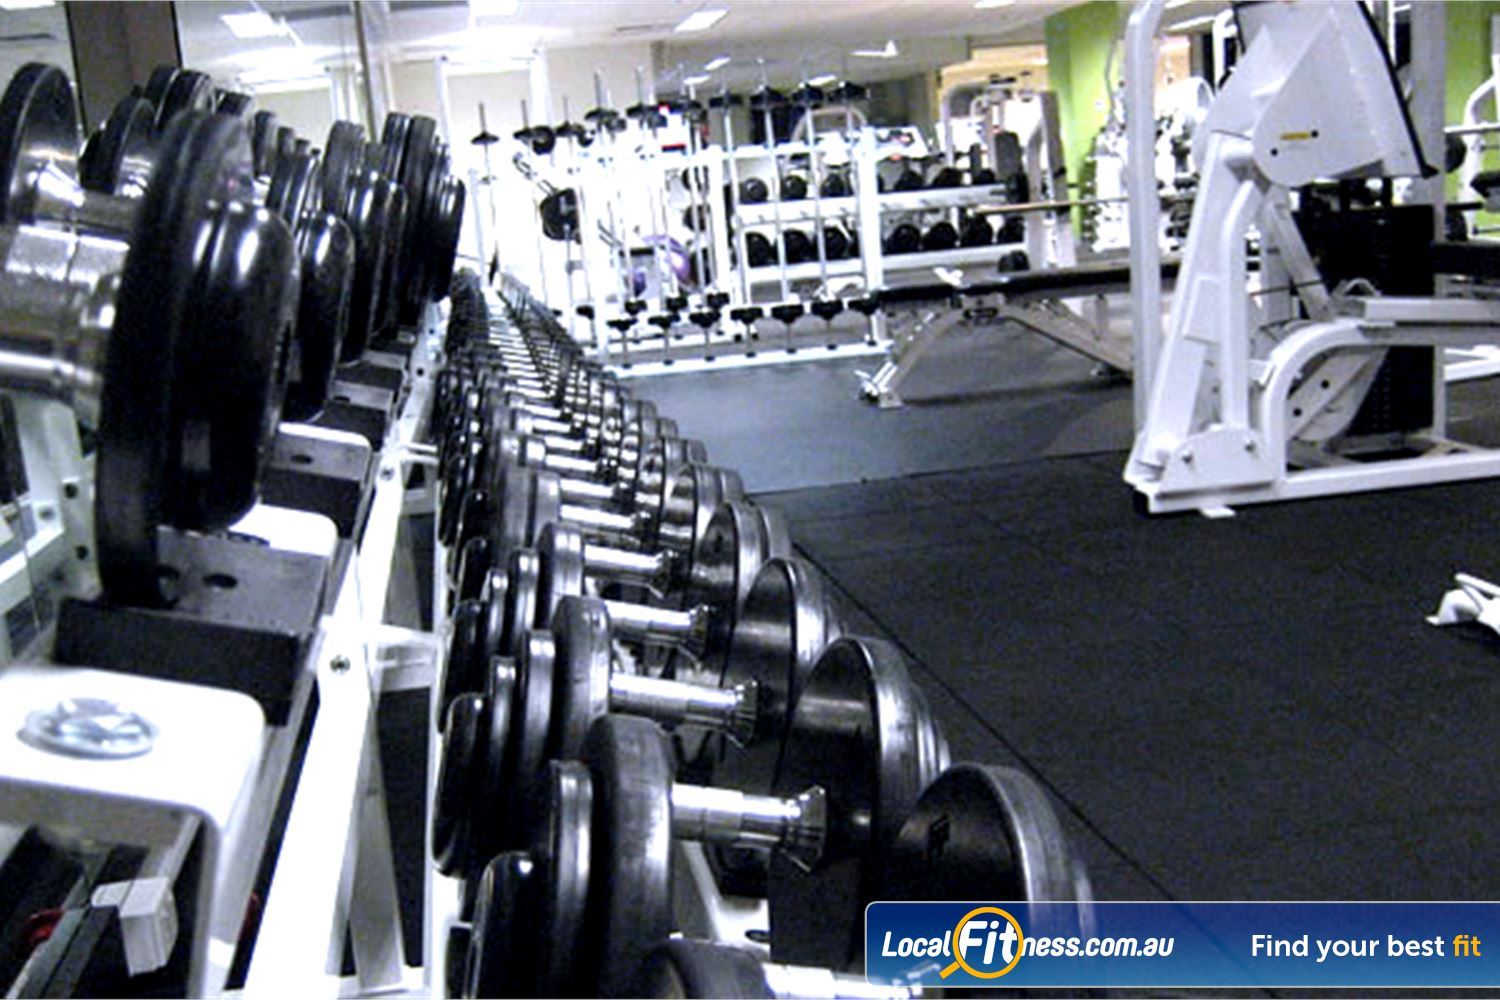 The Toorak Health Club Toorak Our free-weights area includes heavy duty equipment.